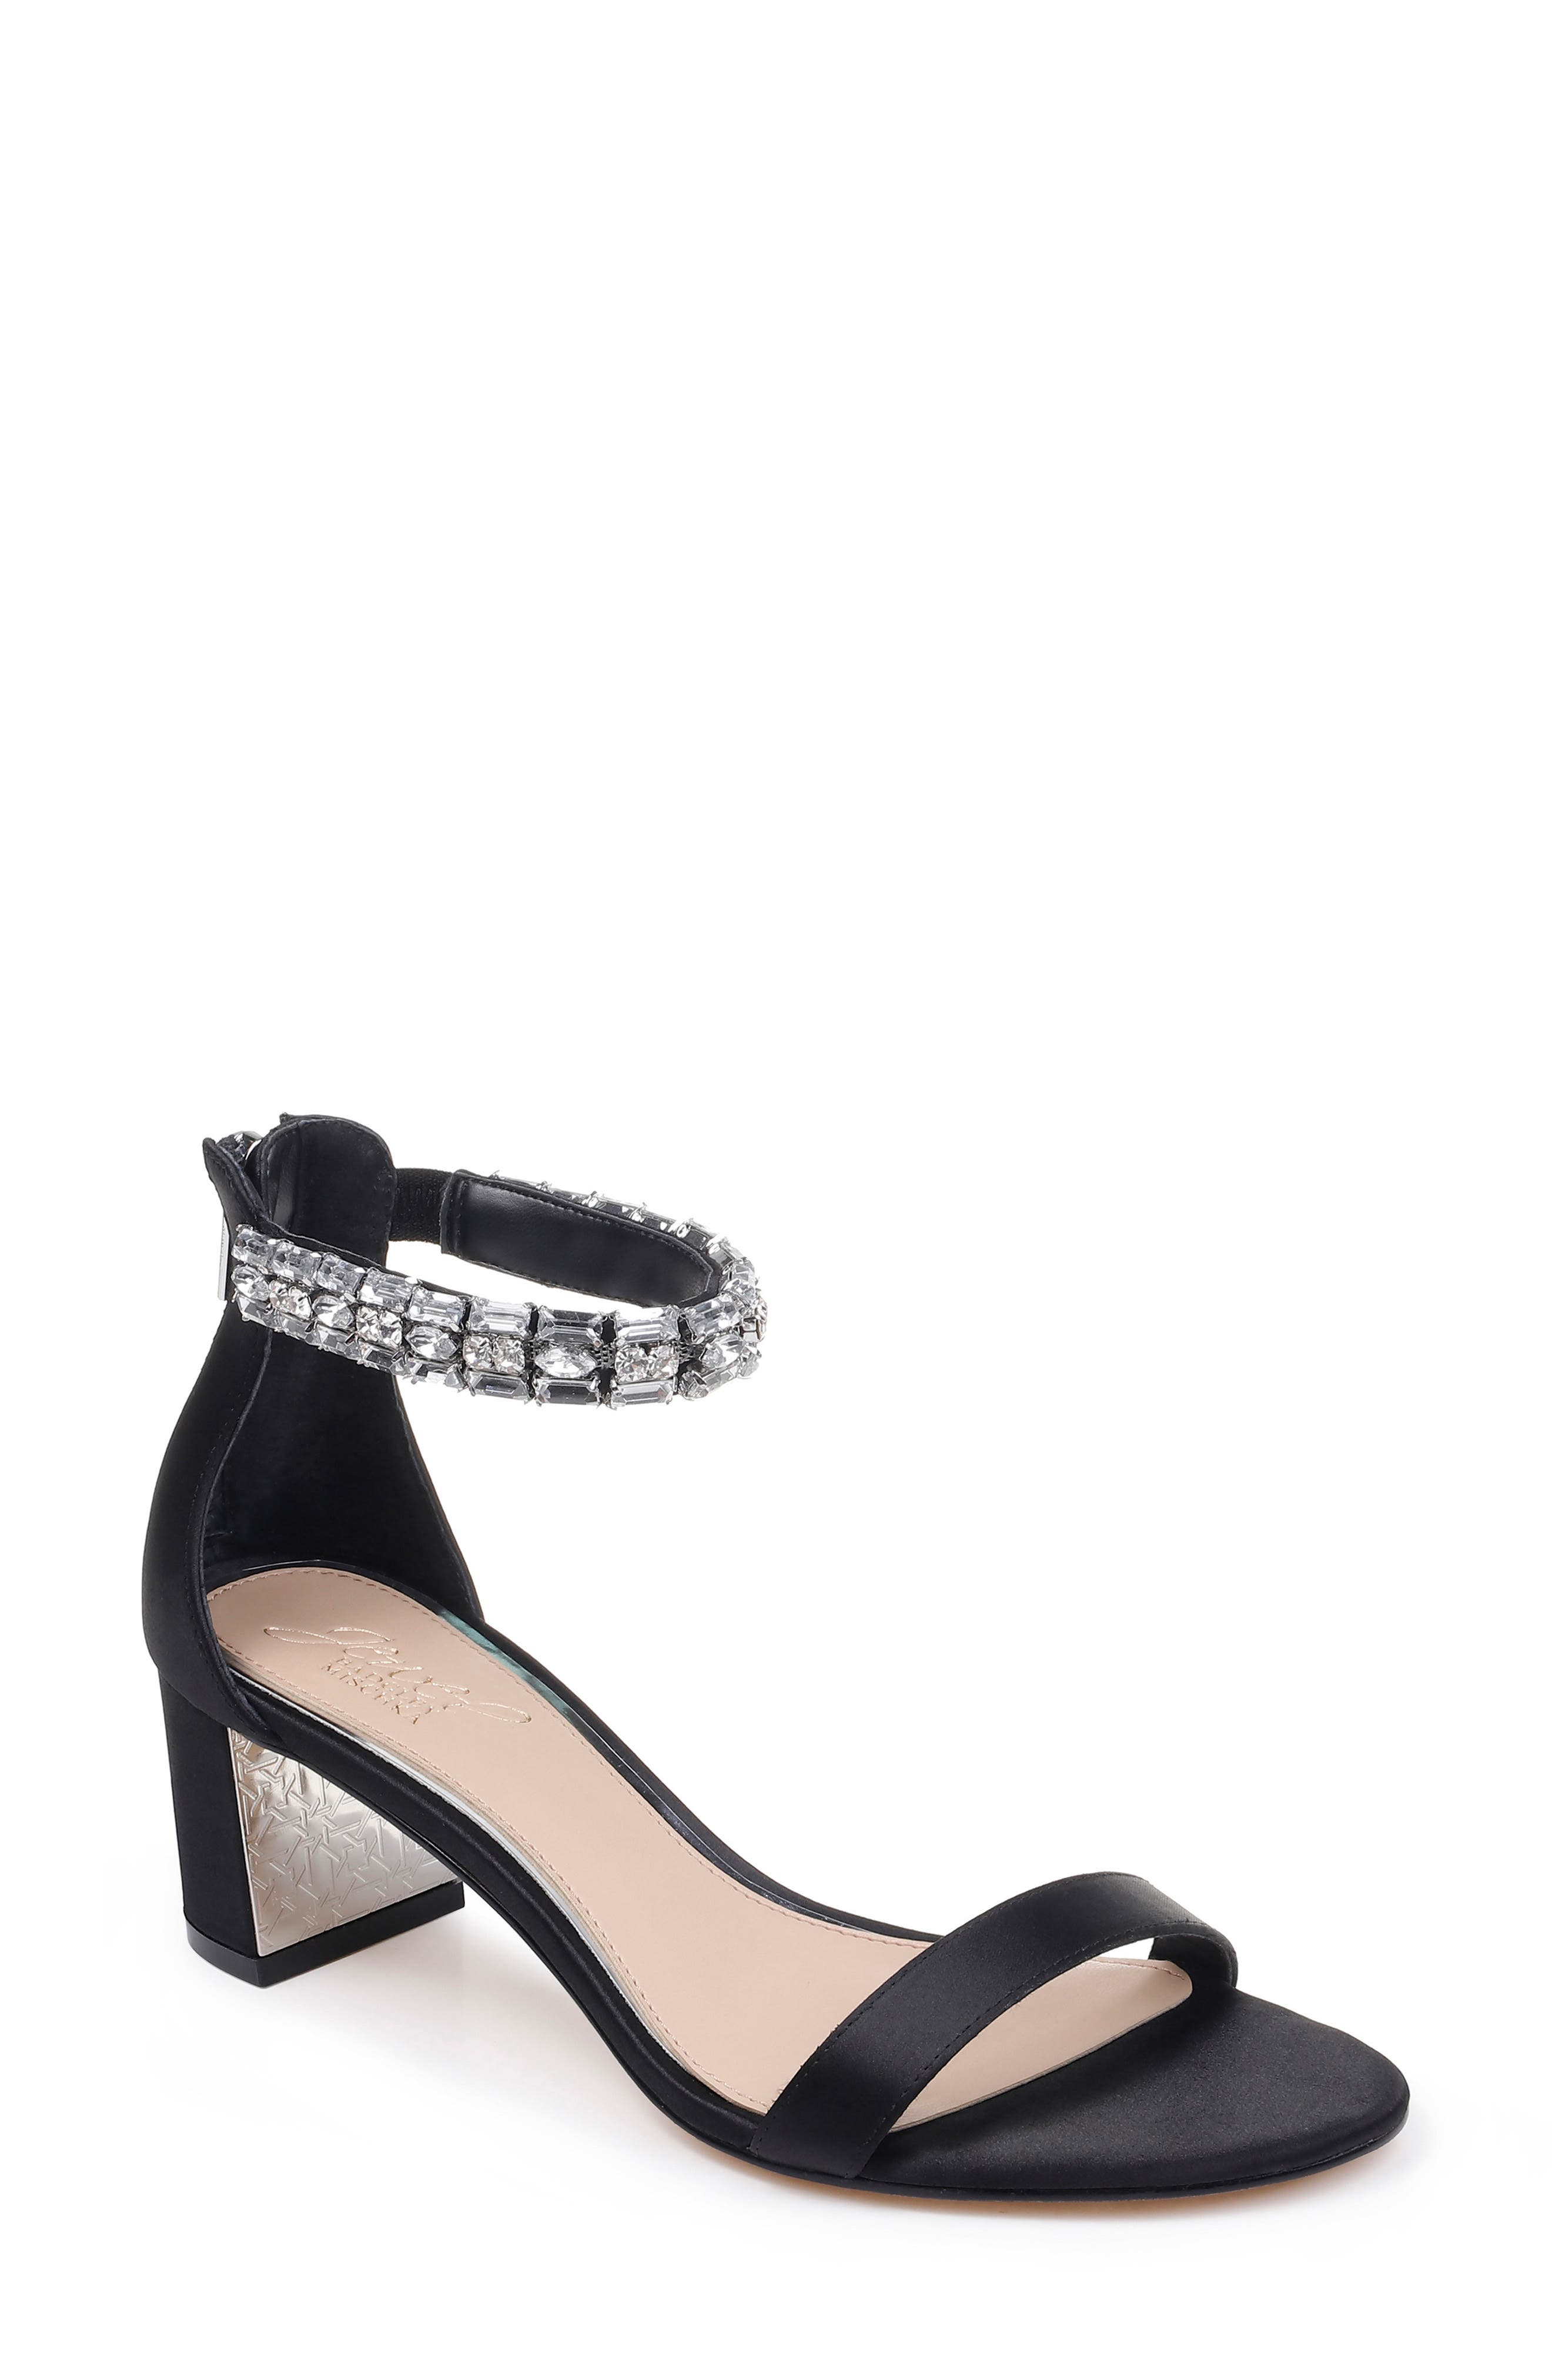 JEWEL BADGLEY MISCHKA Katerina Ankle Strap Sandal, Main, color, BLACK CRYSTAL SATIN